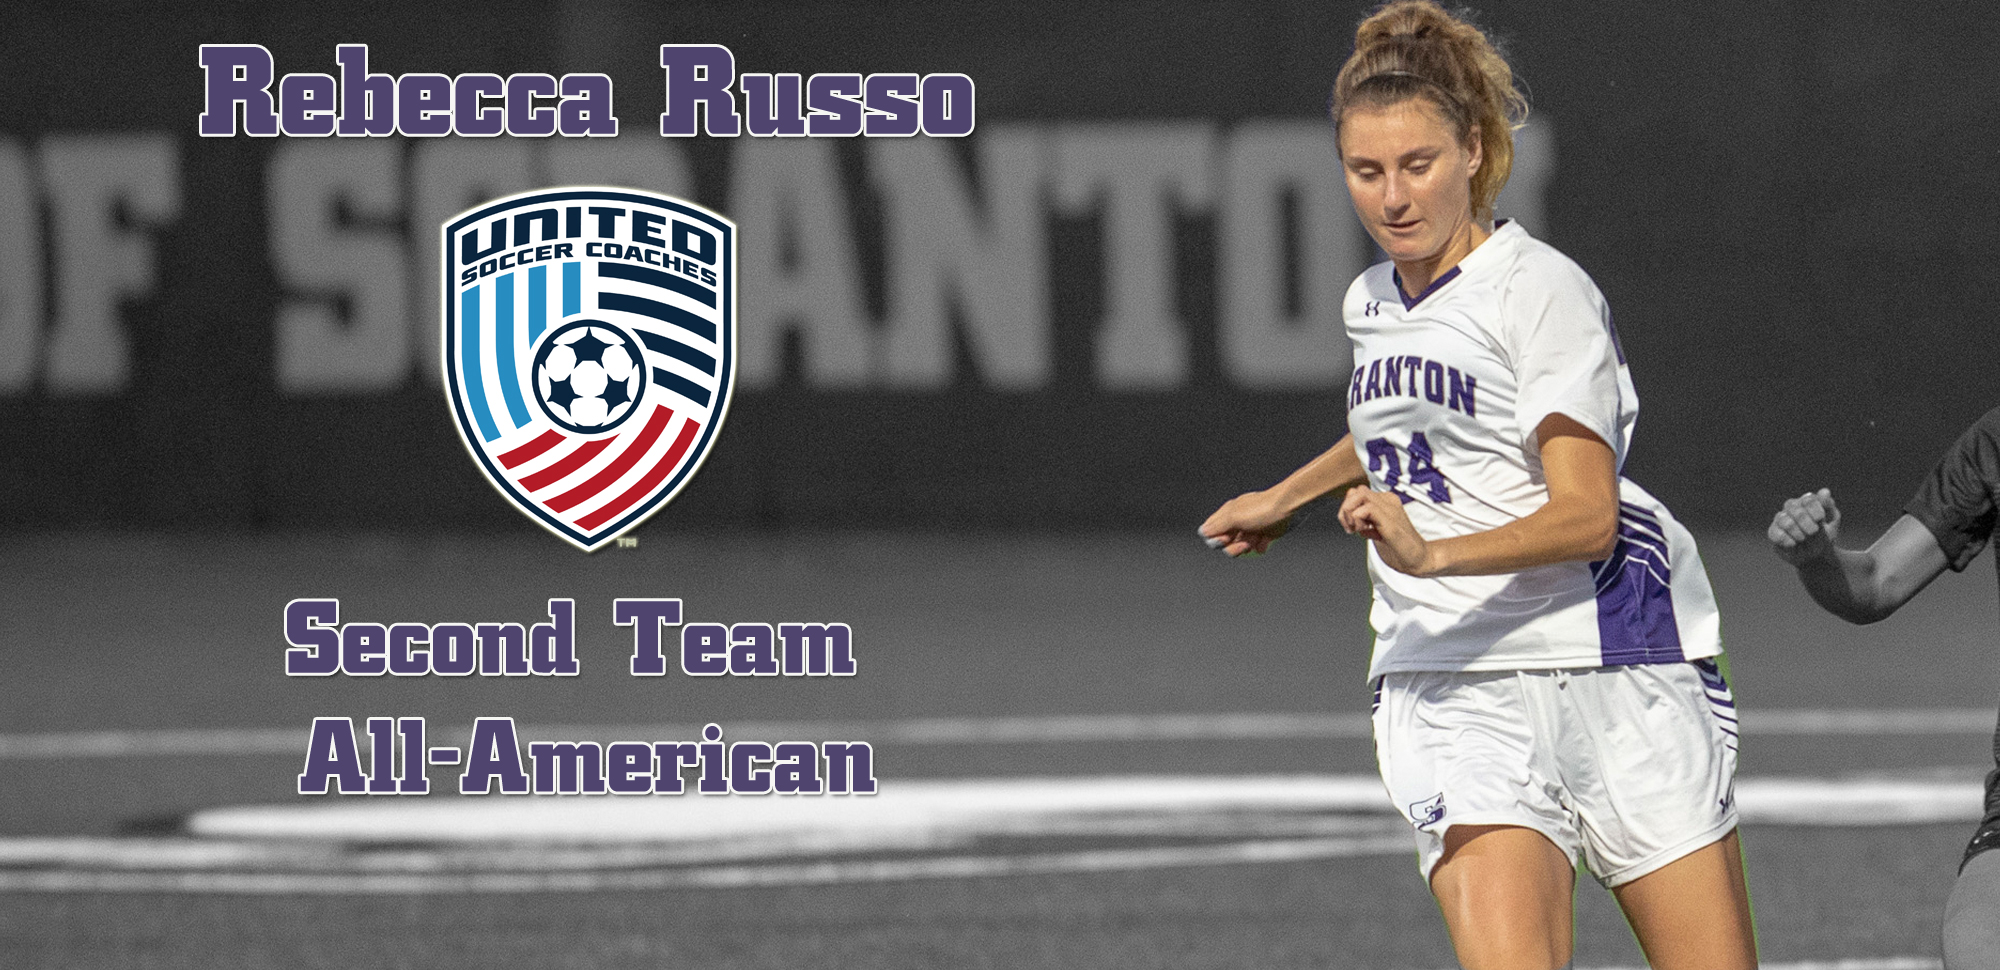 Junior Rebecca Russo is just the 13th University of Scranton women's soccer player to earn All-America honors.